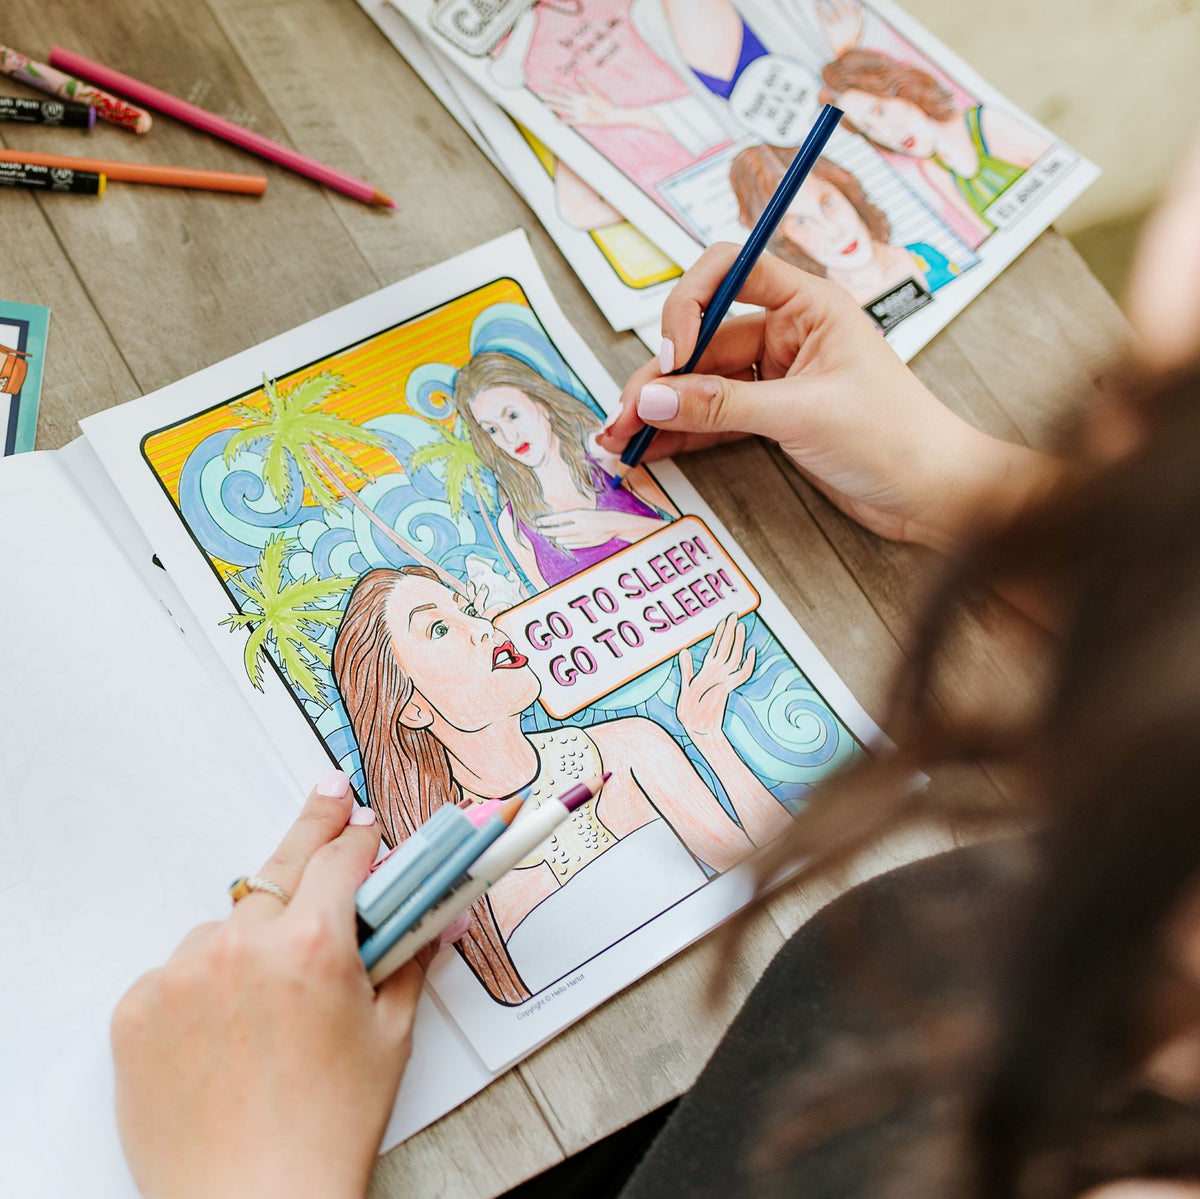 The New York Housewives Coloring Book